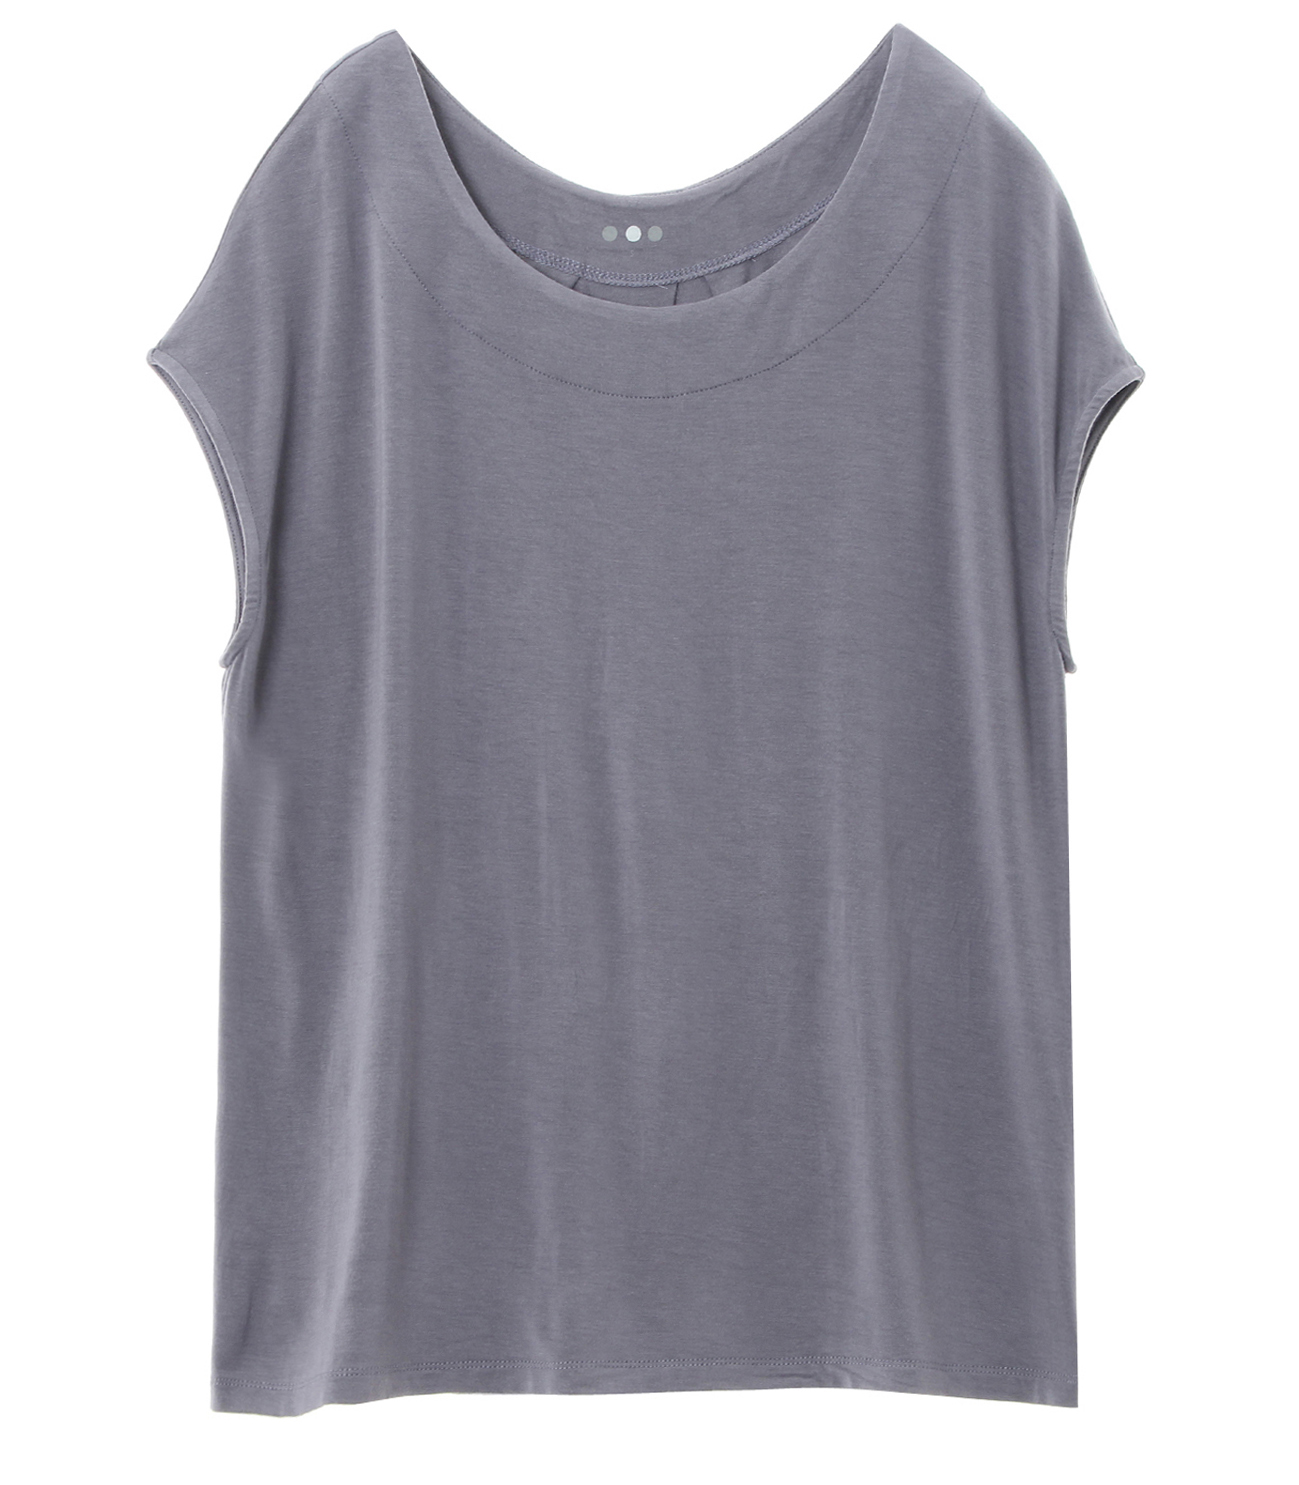 refined jersey top with back detall 詳細画像 blue grey 1